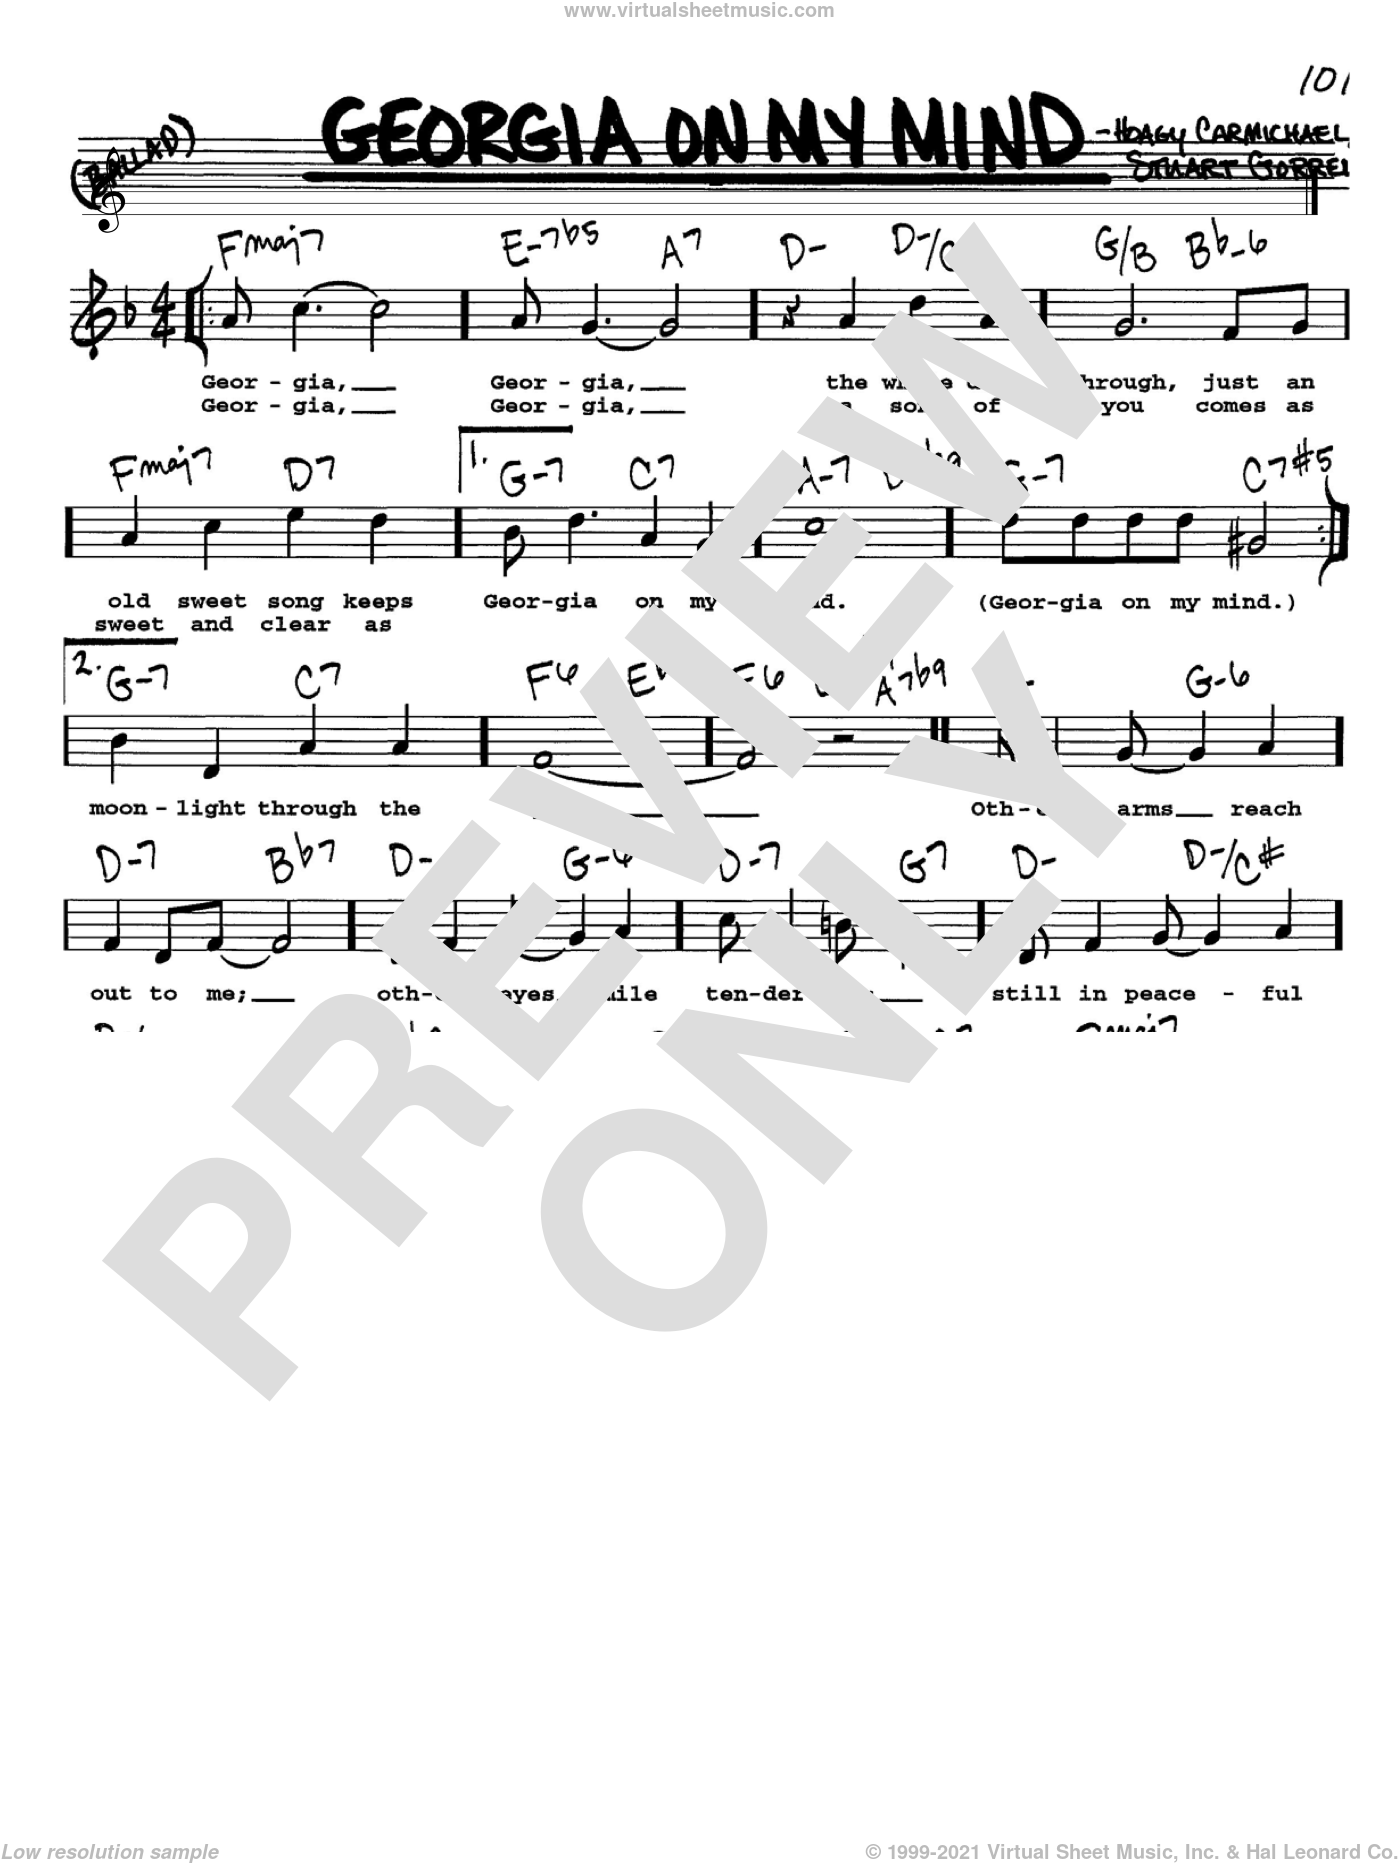 Georgia On My Mind sheet music for voice and other instruments  by Ray Charles, Willie Nelson, Hoagy Carmichael and Stuart Gorrell, intermediate skill level